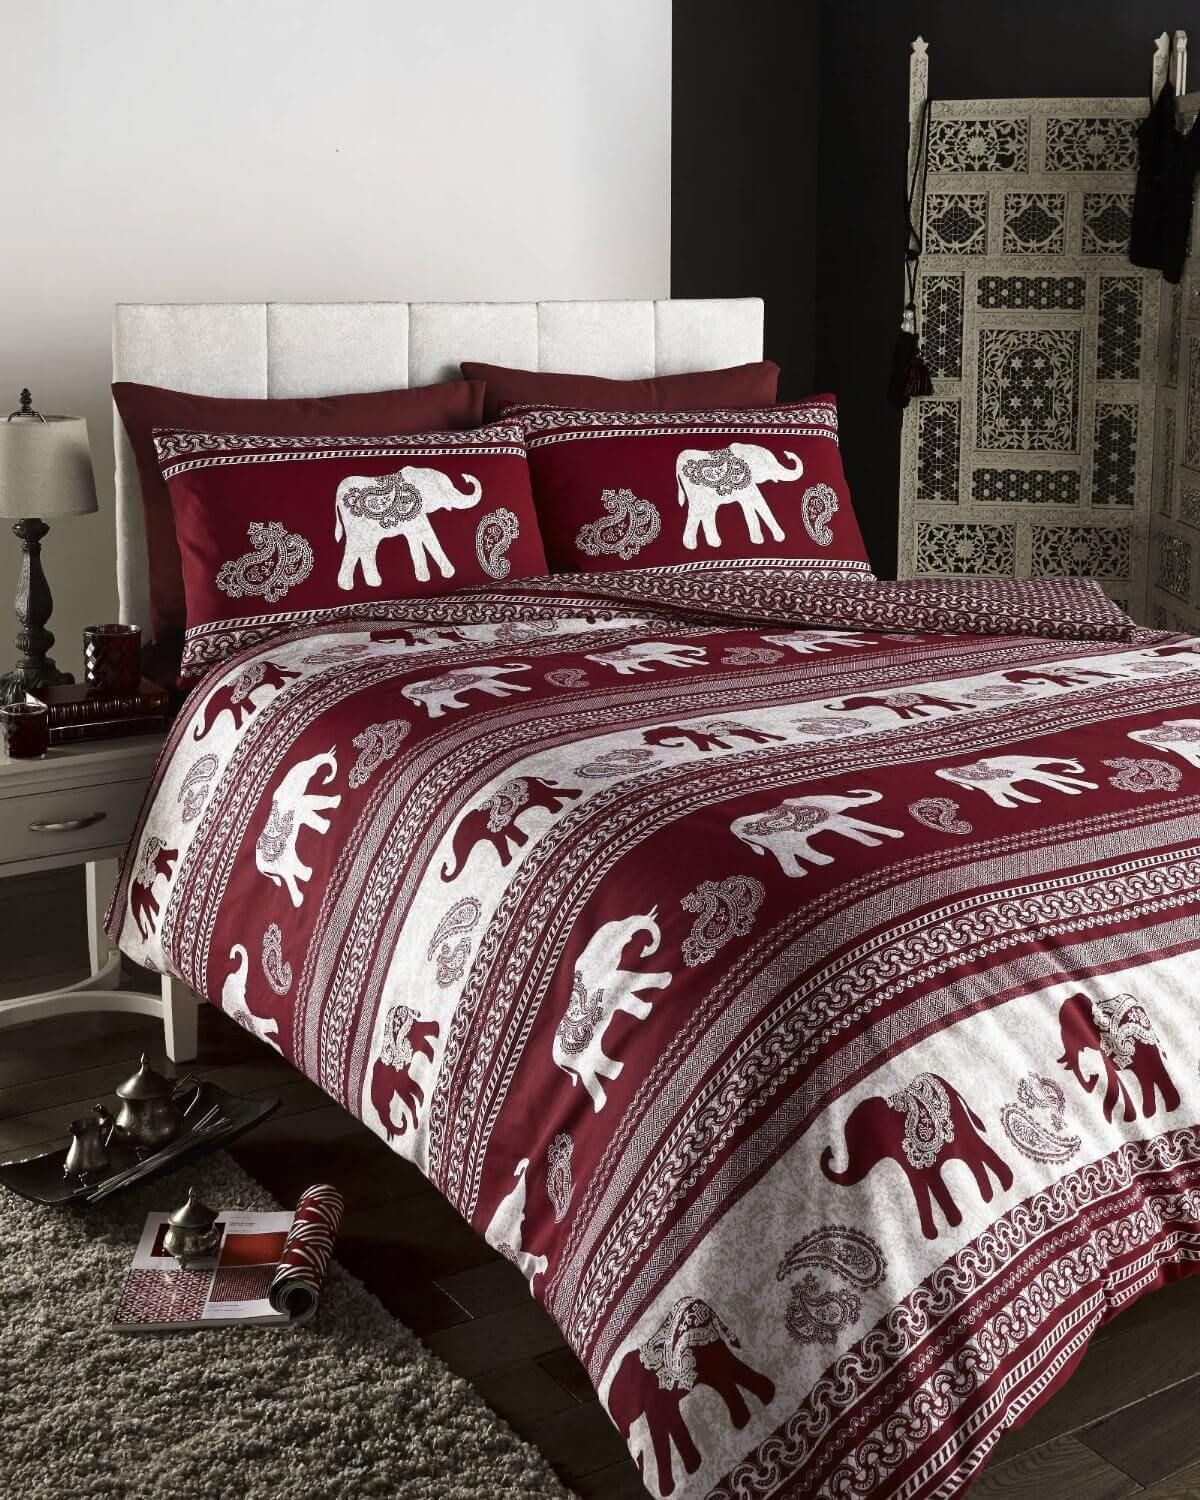 Our elephant printed beddings are covered with gorgeous indian